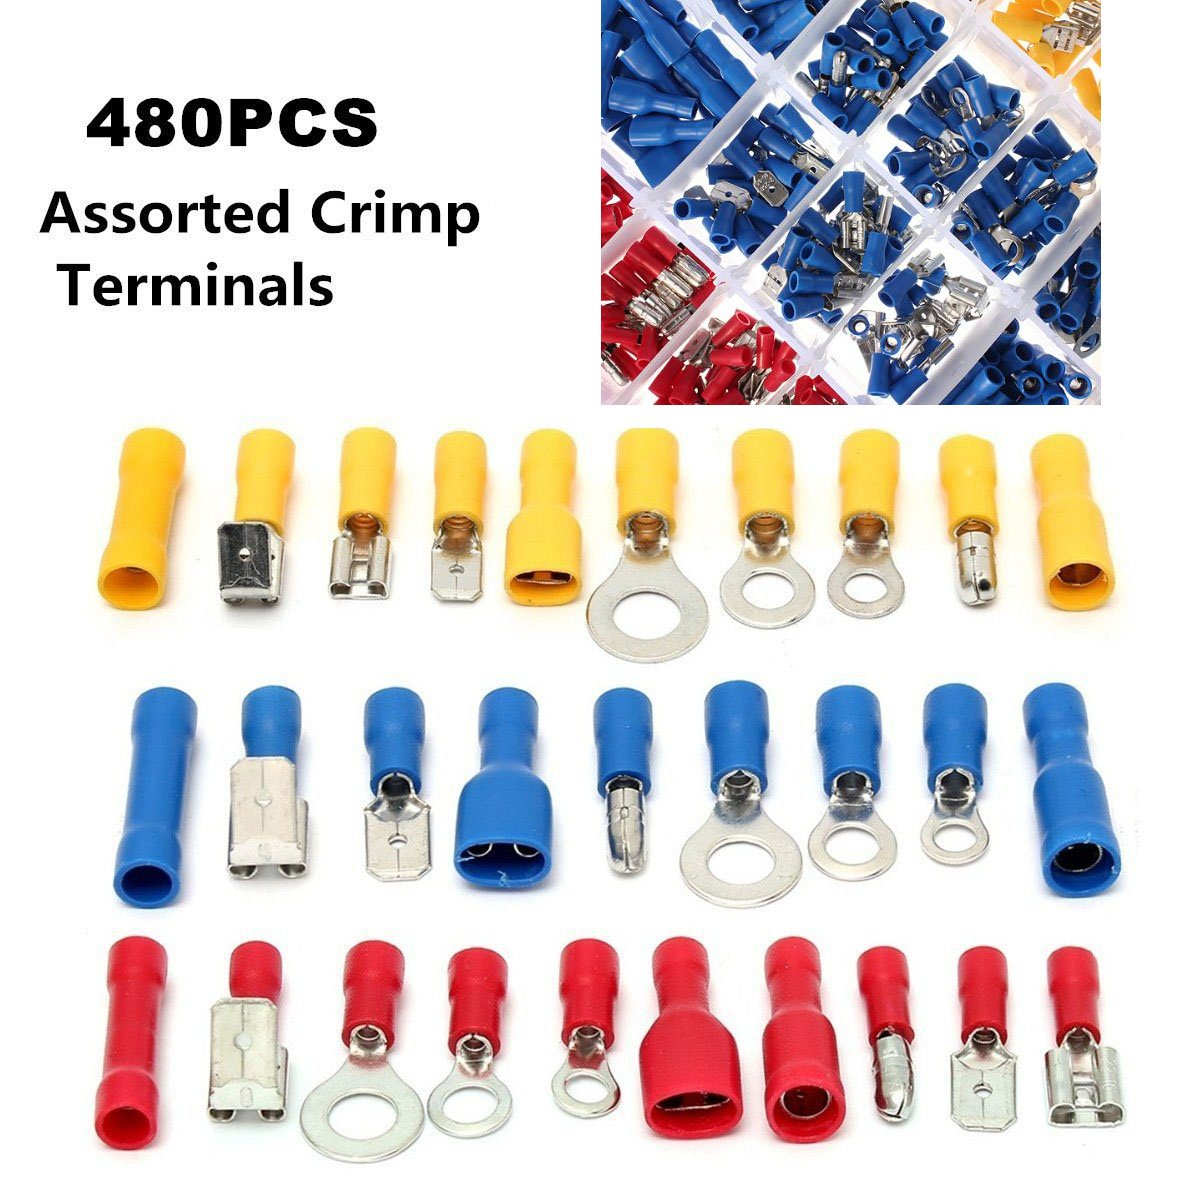 El Sky Wire Terminal Crimp Connectors 480 Pcs 12 Size Assorted Wiring Mixed Lug Kitelectrical Spade Ring Butt Set With Premium Case